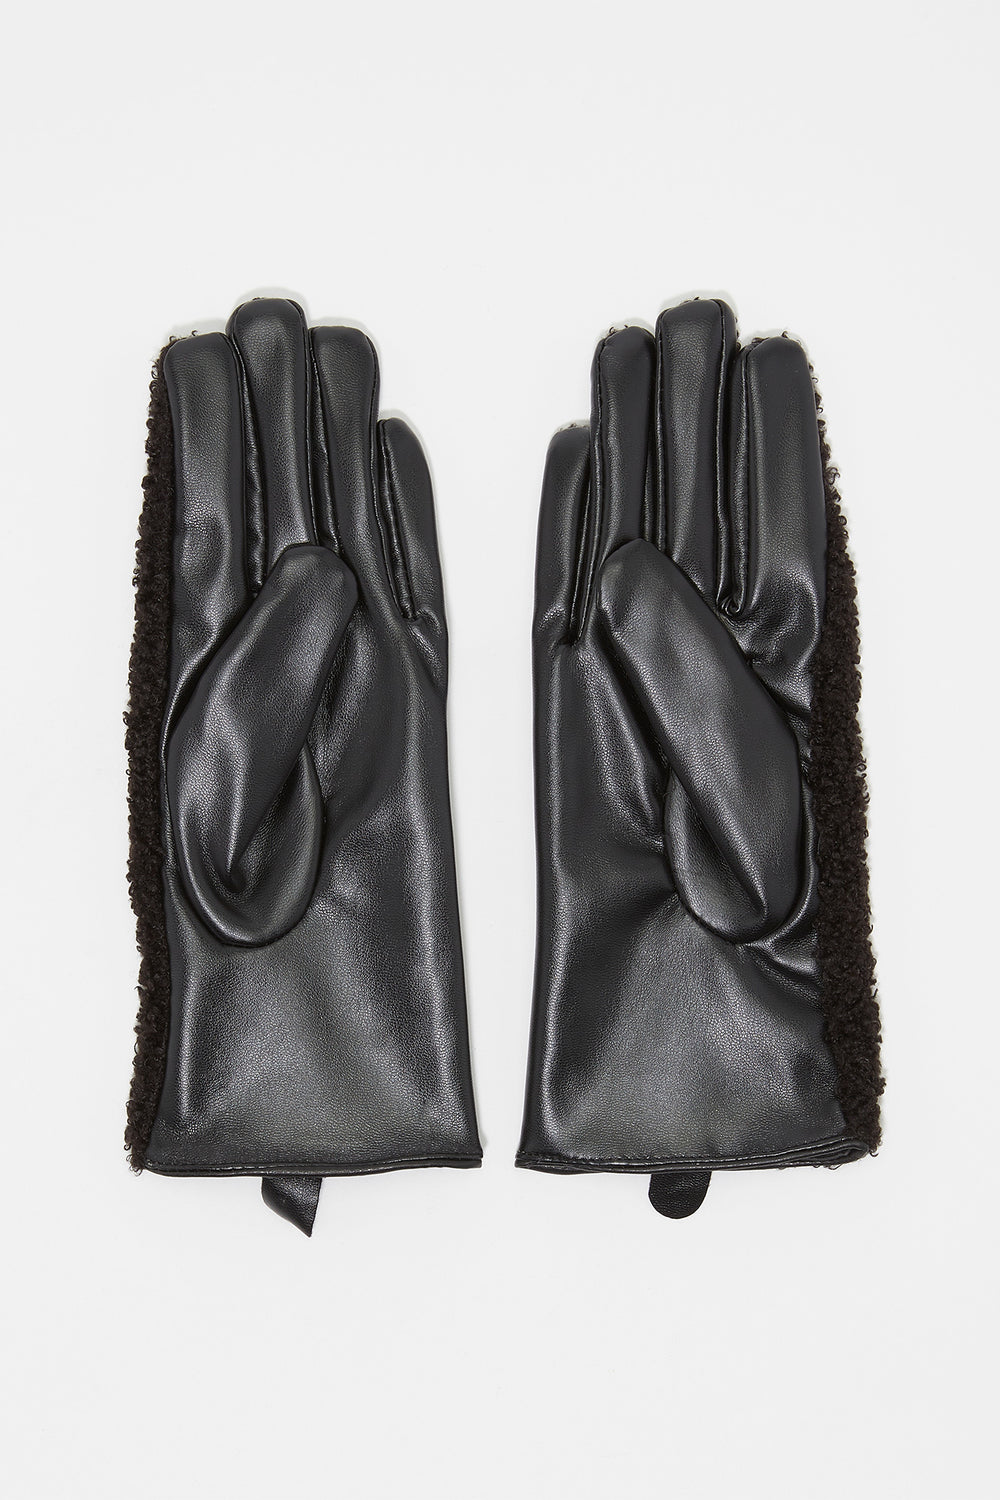 Contrast Teddy Faux-Leather Touchscreen Glove Black